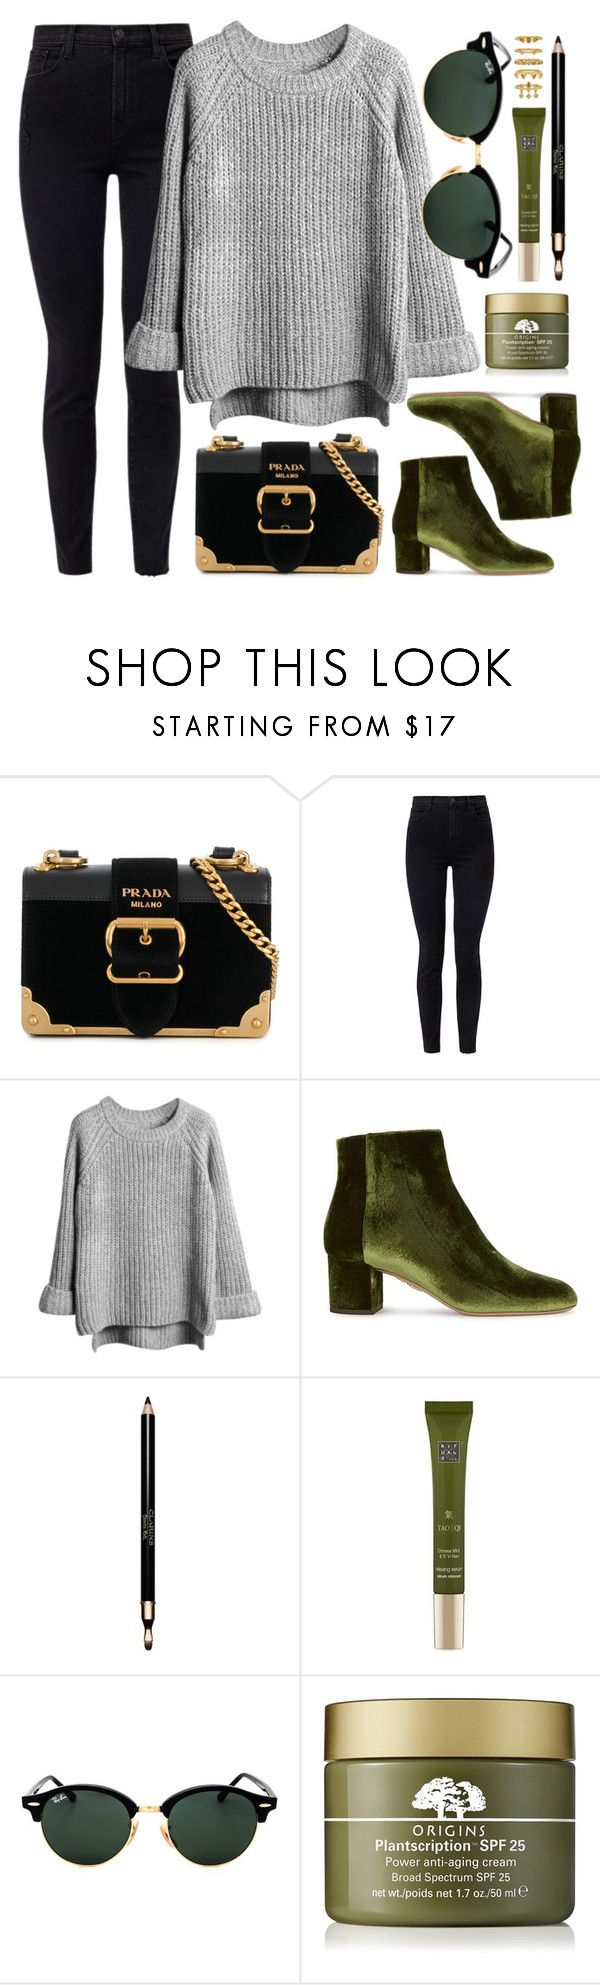 """Today's Look"" by smartbuyglasses-uk ❤ liked on Polyvore featuring Prada, J Brand, Aquazzura, Clarins, Rituals, Ray-Ban, Origins, Luv Aj and GREEN"